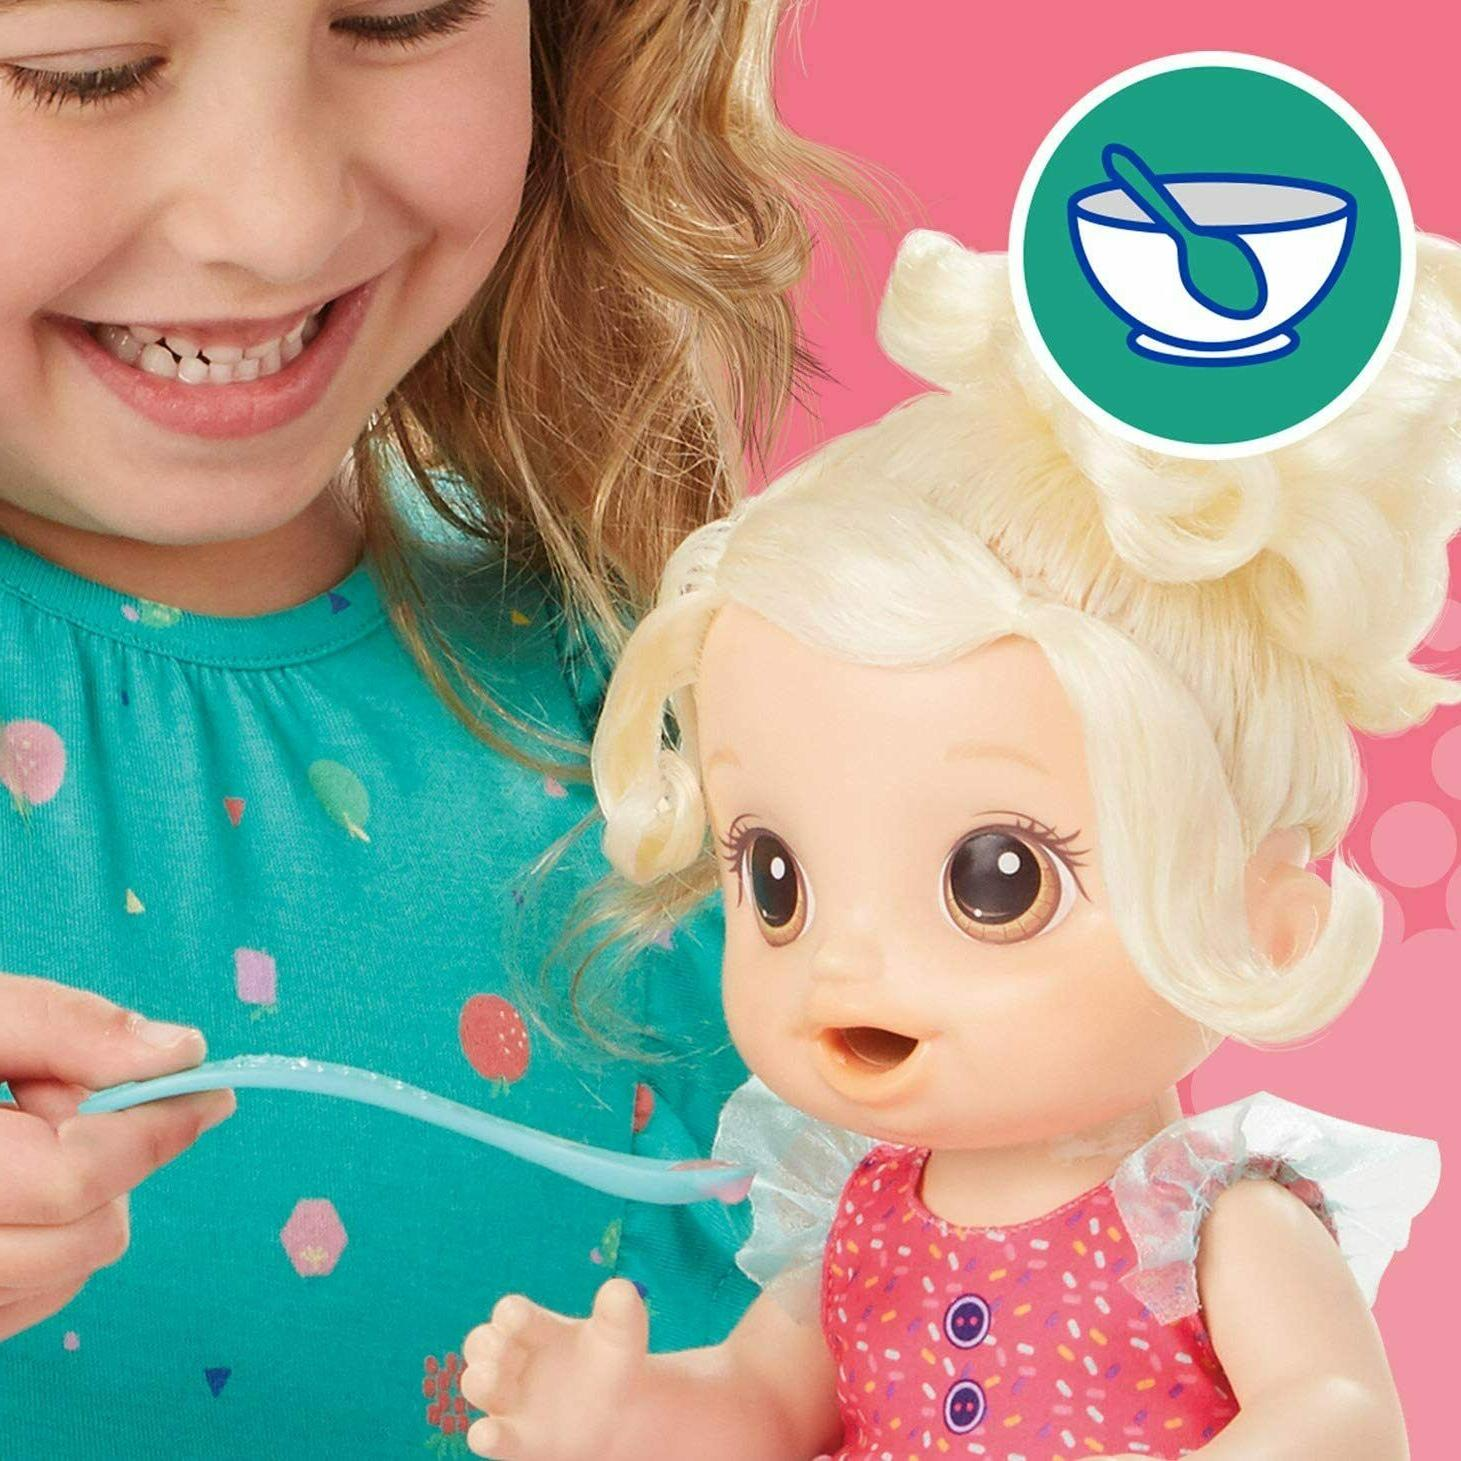 Mixer Baby Strawberry Shake,Accessories, Blonde Hair Ages 3